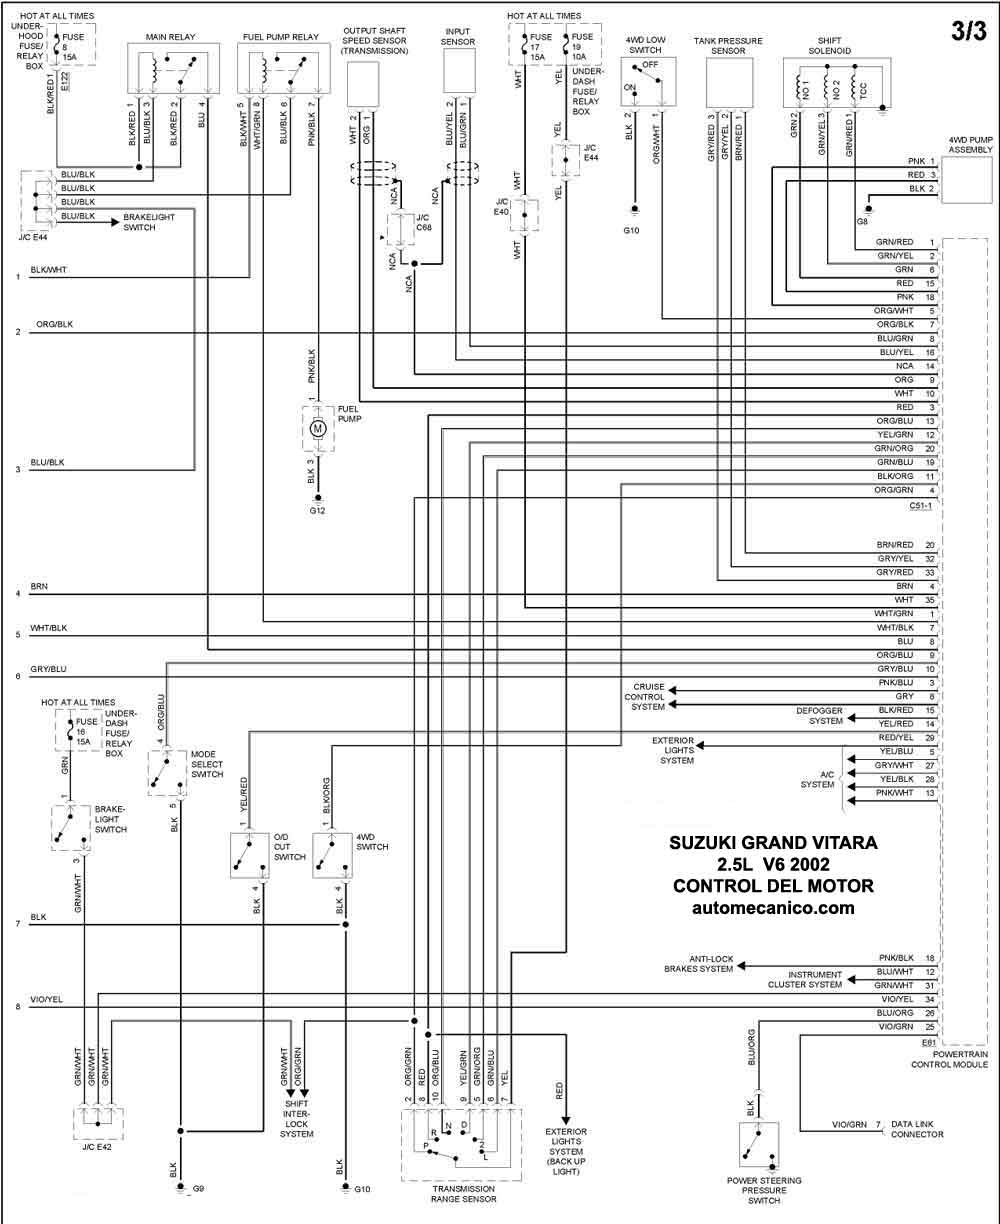 Toyota Tundra V8 Engine Diagram Toyota 5.7L Engine Wiring